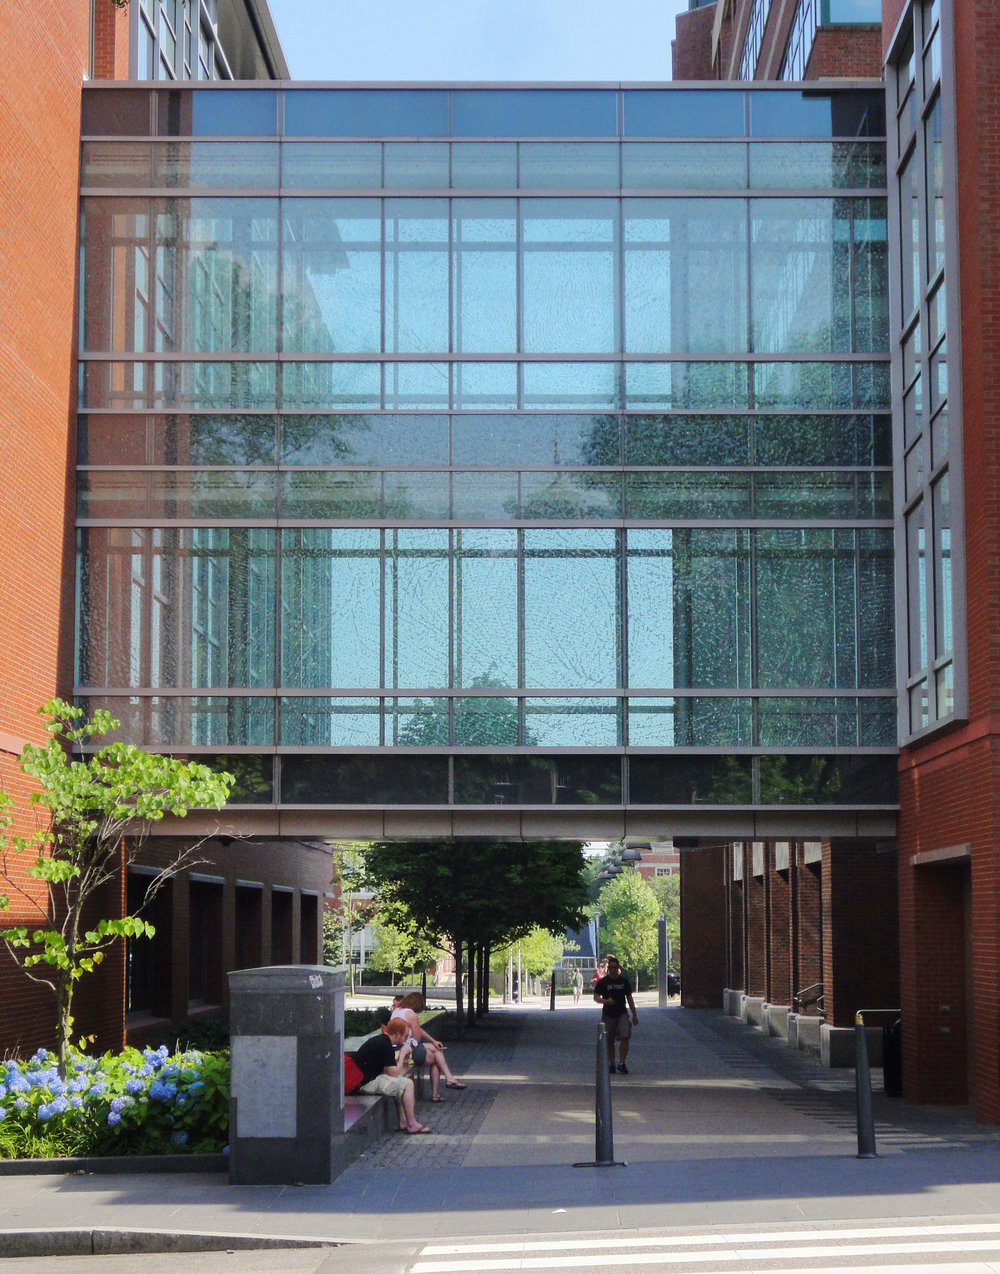 Brown University life sciences